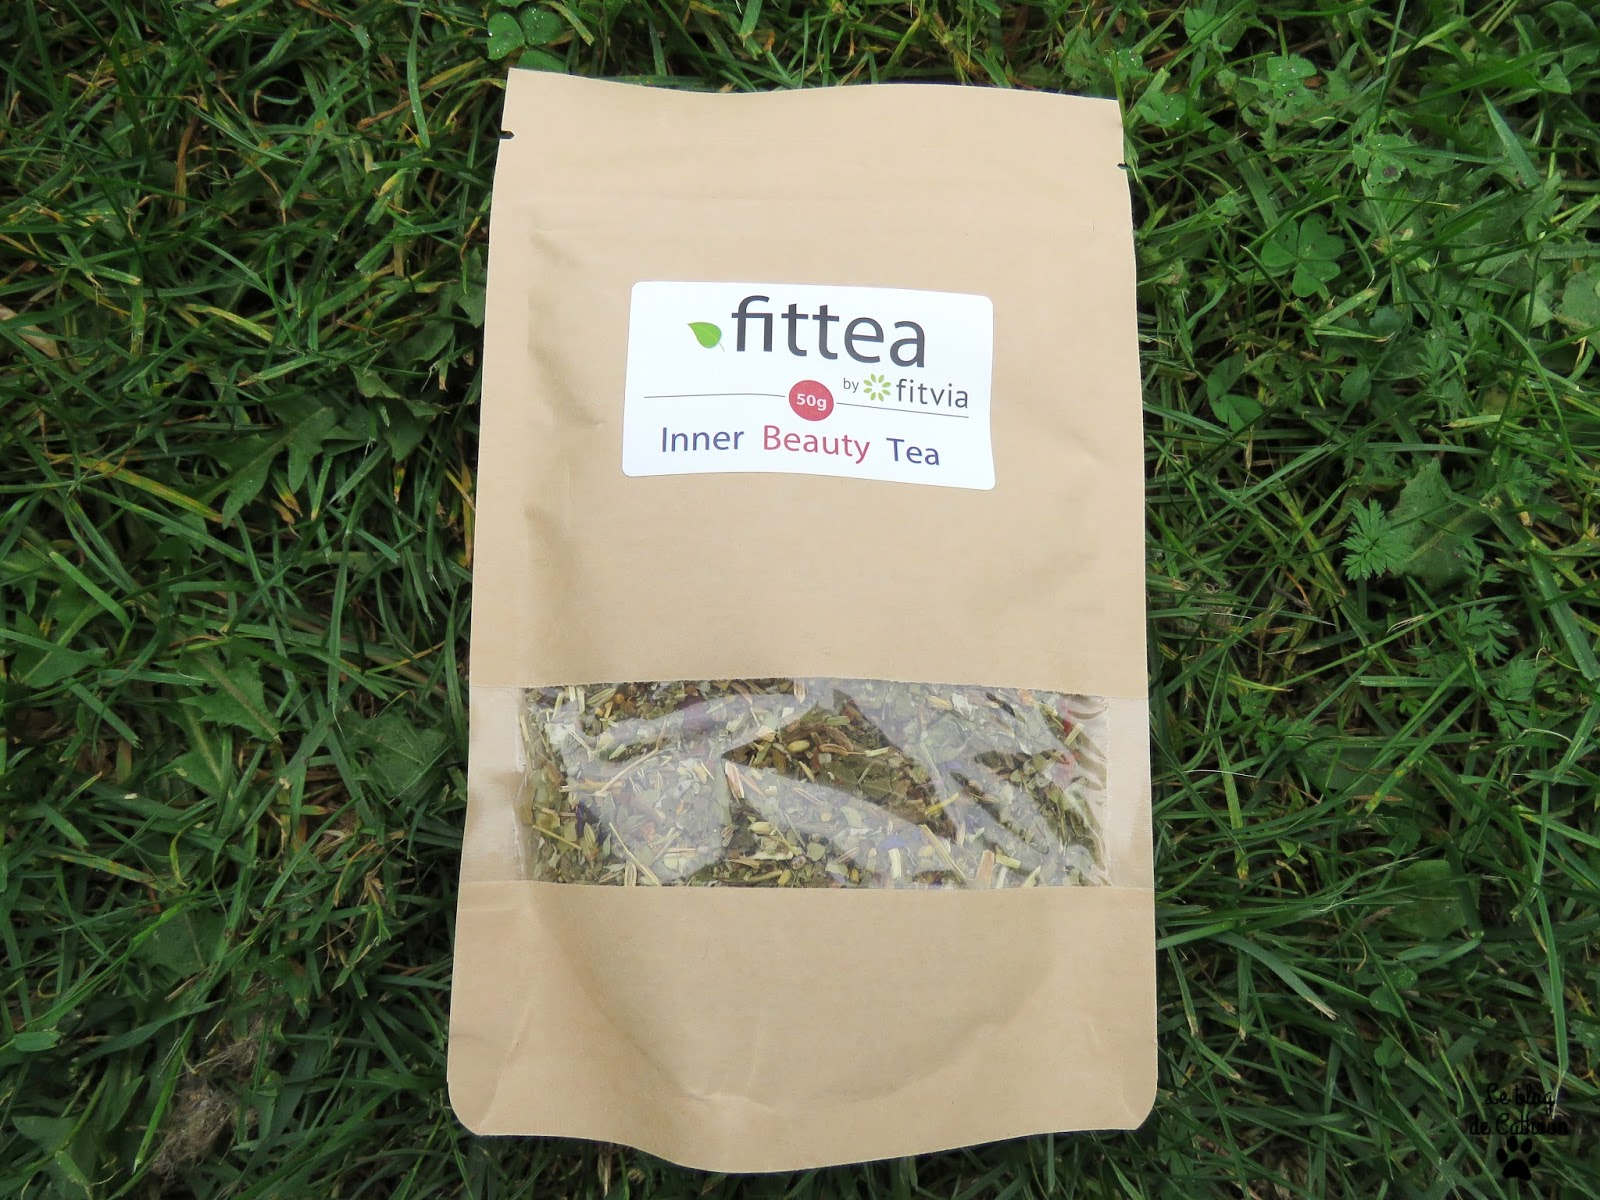 inner beauty tea fittea fitvia